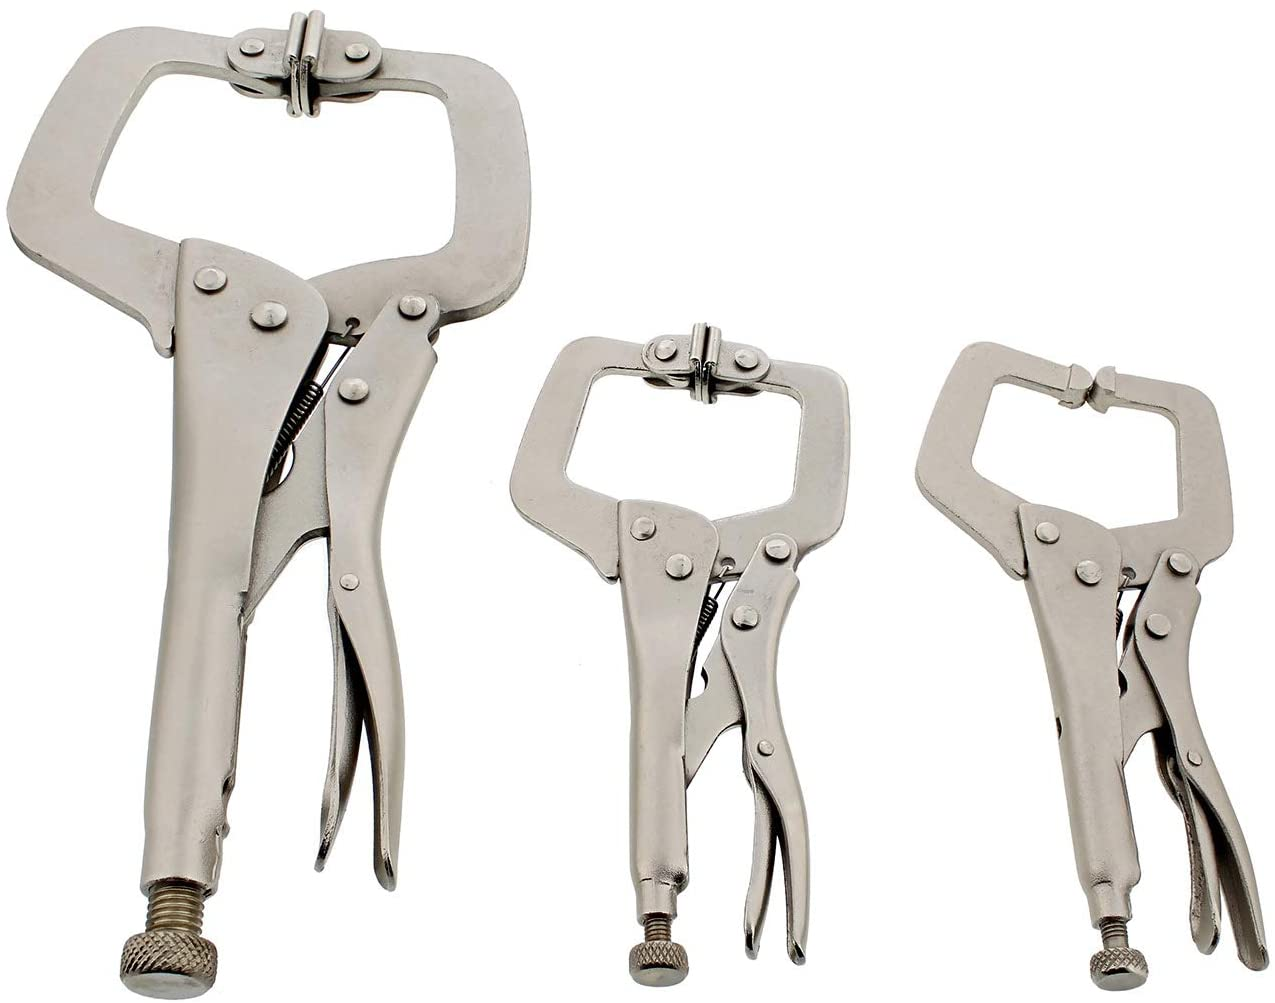 DCT C Clamps for Woodworking Welding Clamps Locking Pliers Set 3-Piece Wood Clamp Set, 11in and 6in Swivel Tip